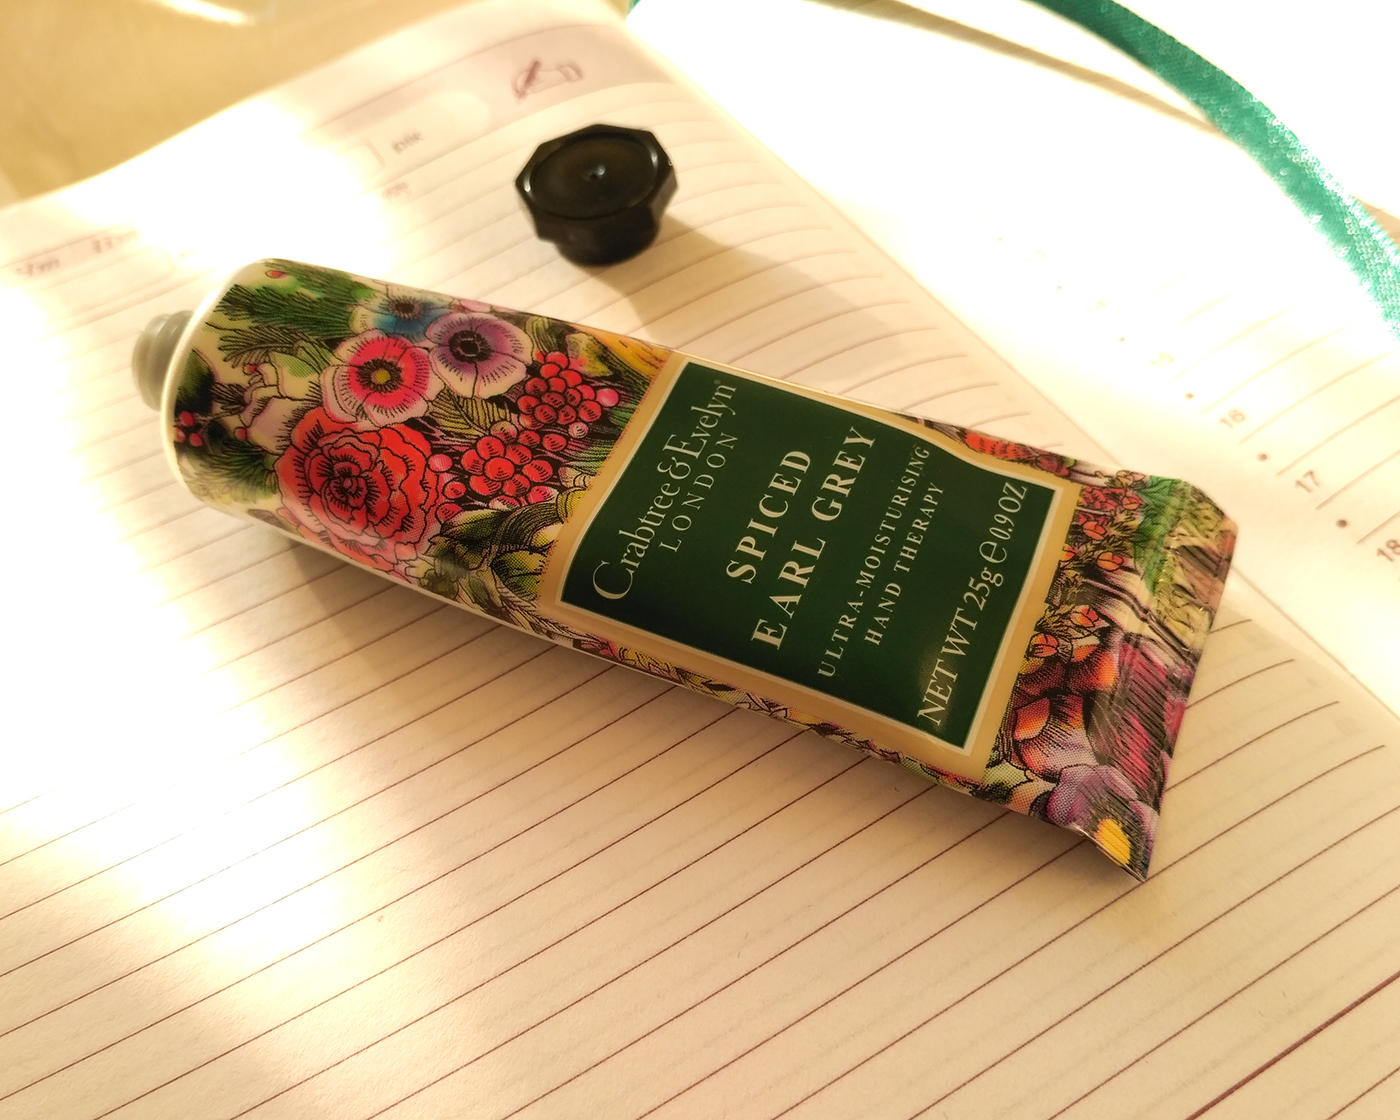 crabtree&evelyn hand cream